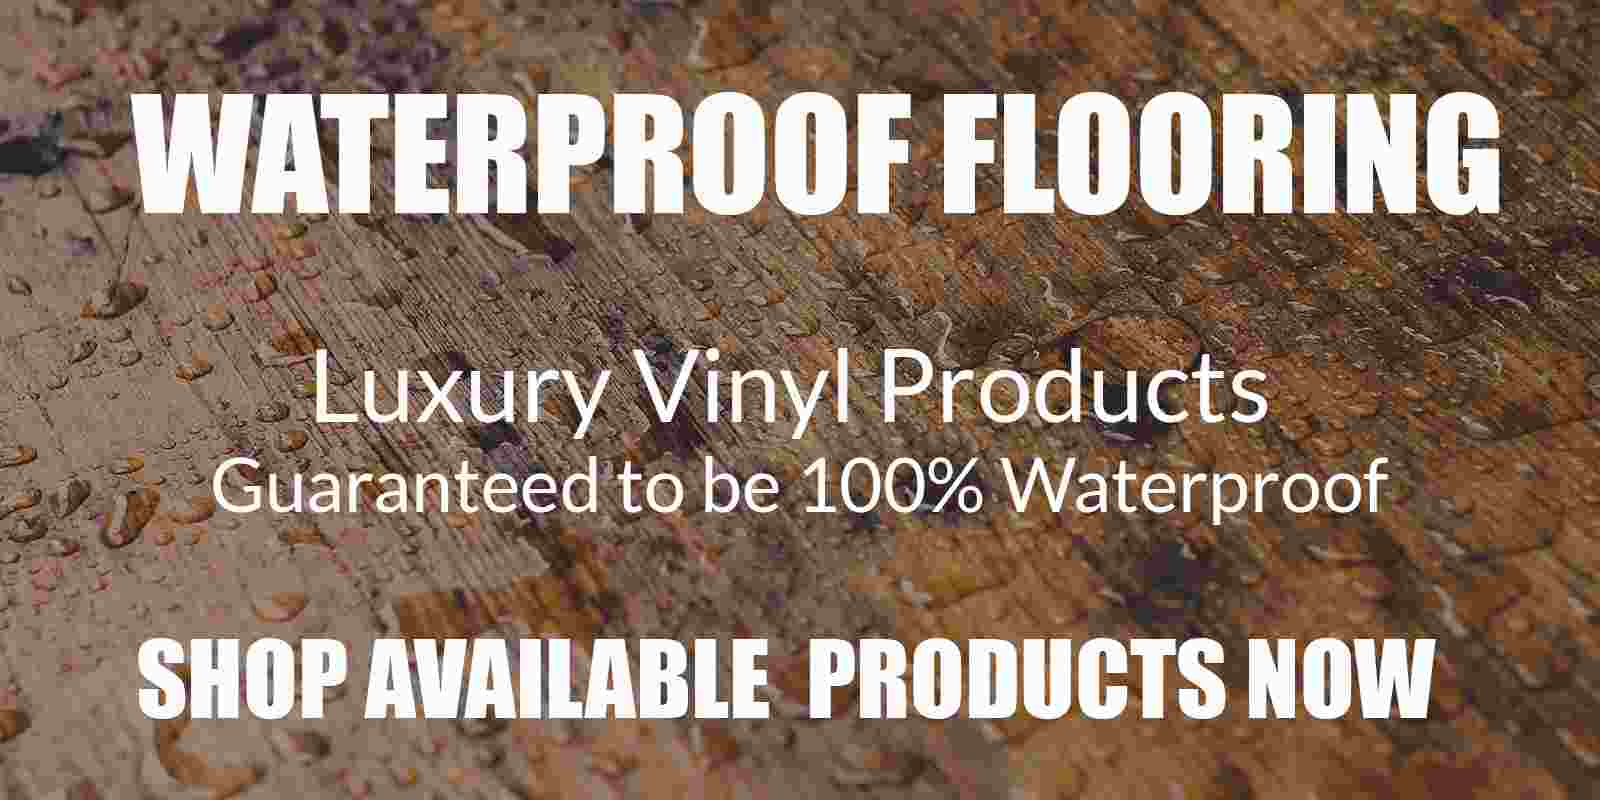 100% Waterproof Flooring from Georgia Carpet Industries.